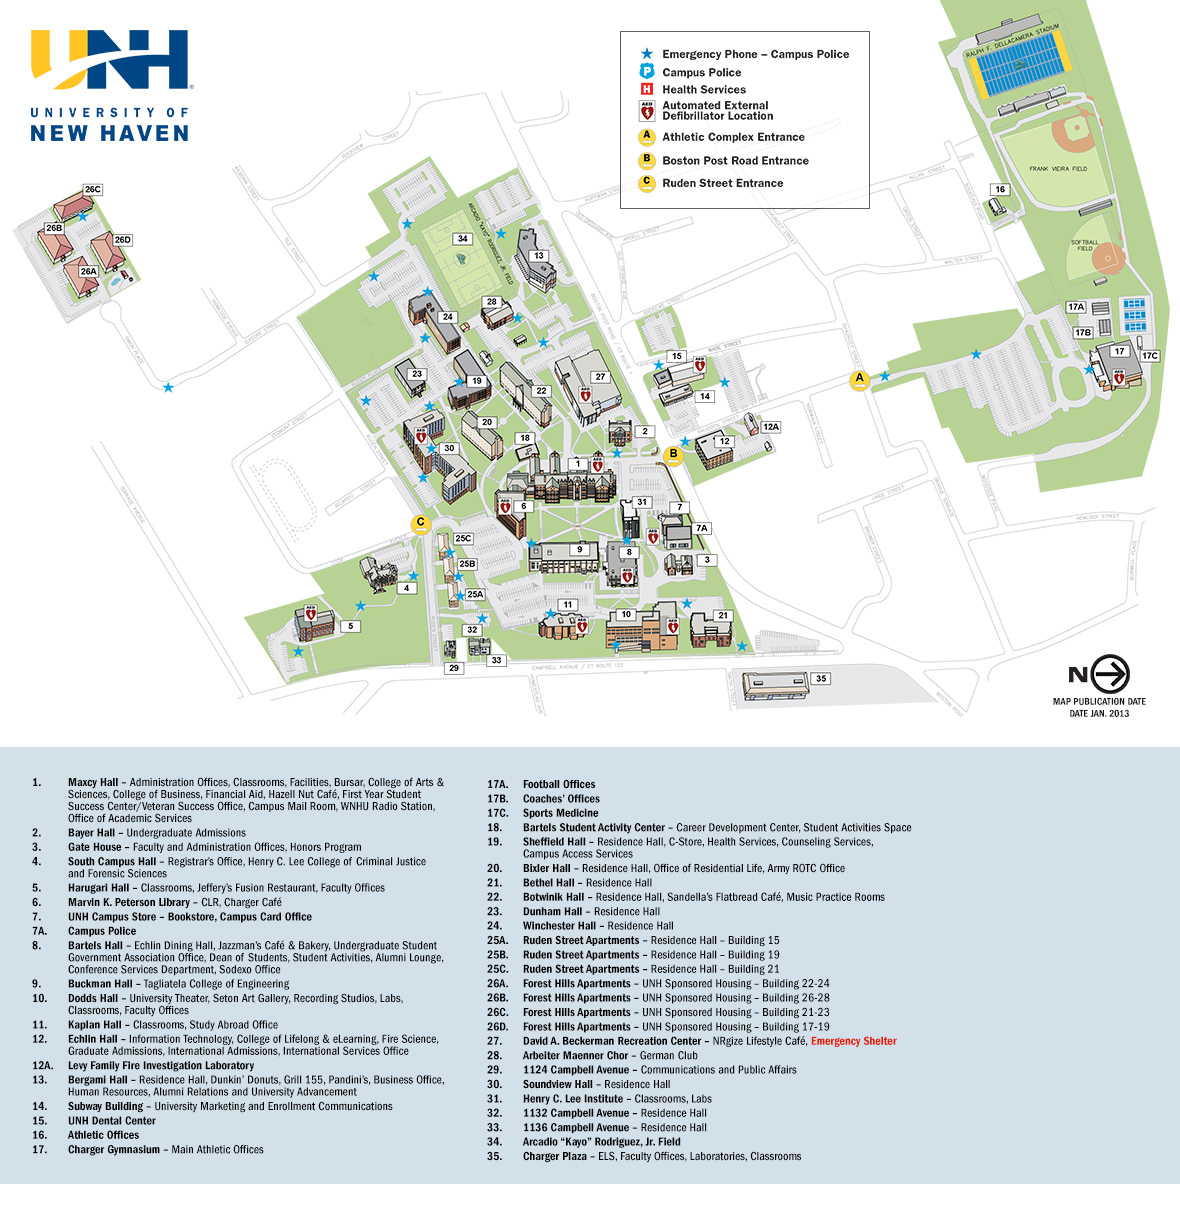 University Of New Haven Campus Map University of New Haven   Campus Map